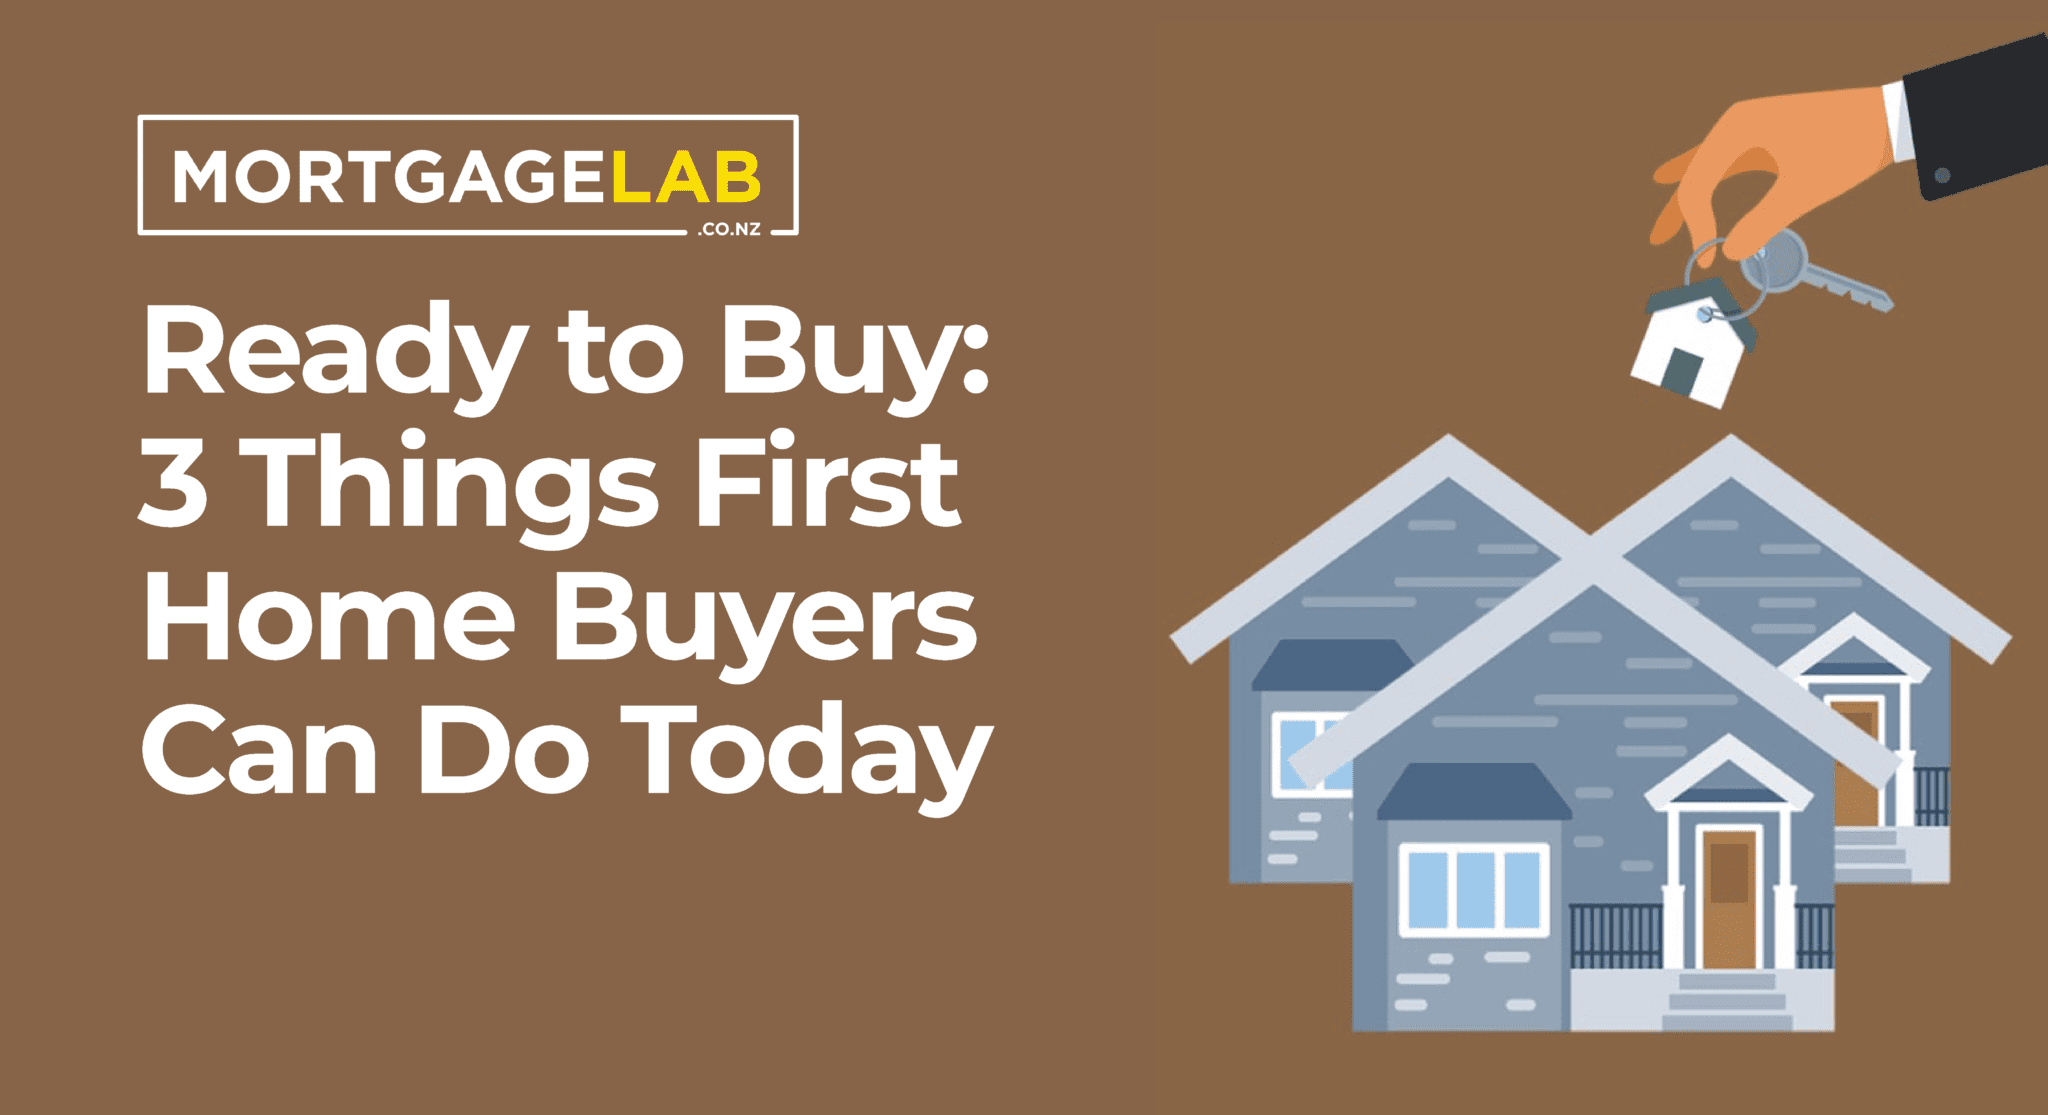 Ready to Buy: 3 Things First Home Buyers Can Do Today